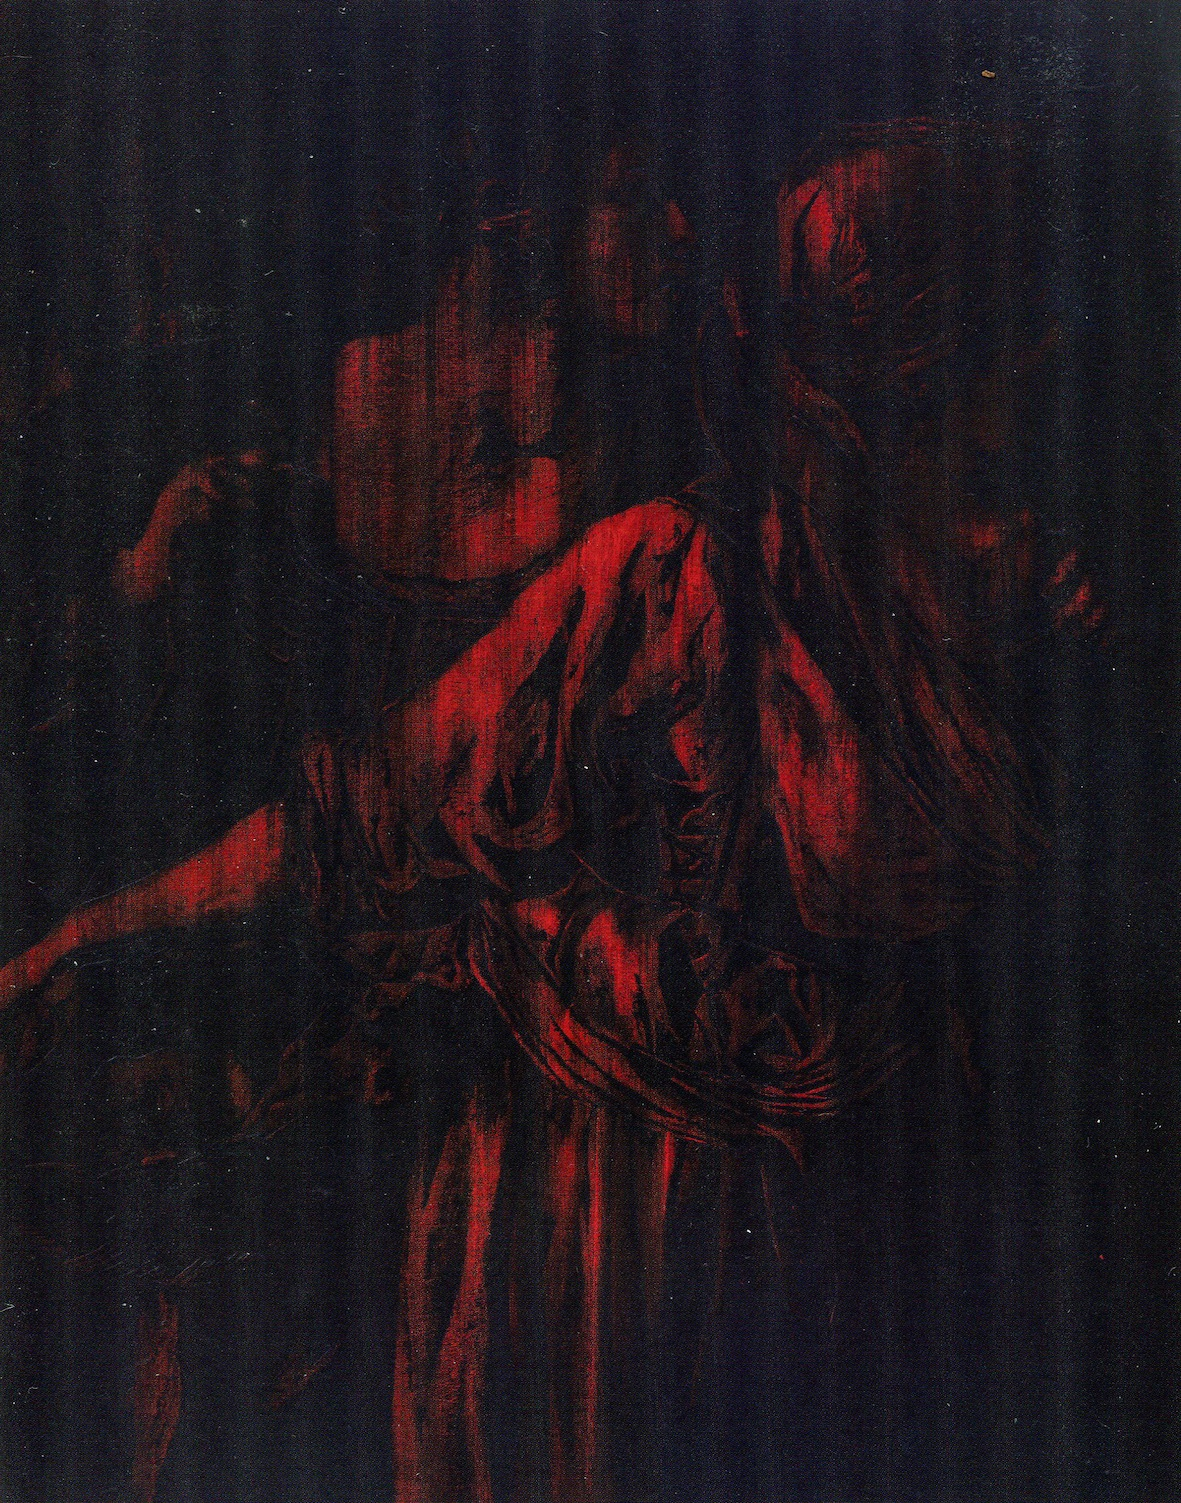 VIRTUE, MORAL ORDER AND THE DISCRETION OF HUMAN GESTURE  1991 Oil and wax on canvas 191.0 x 151.5 cm